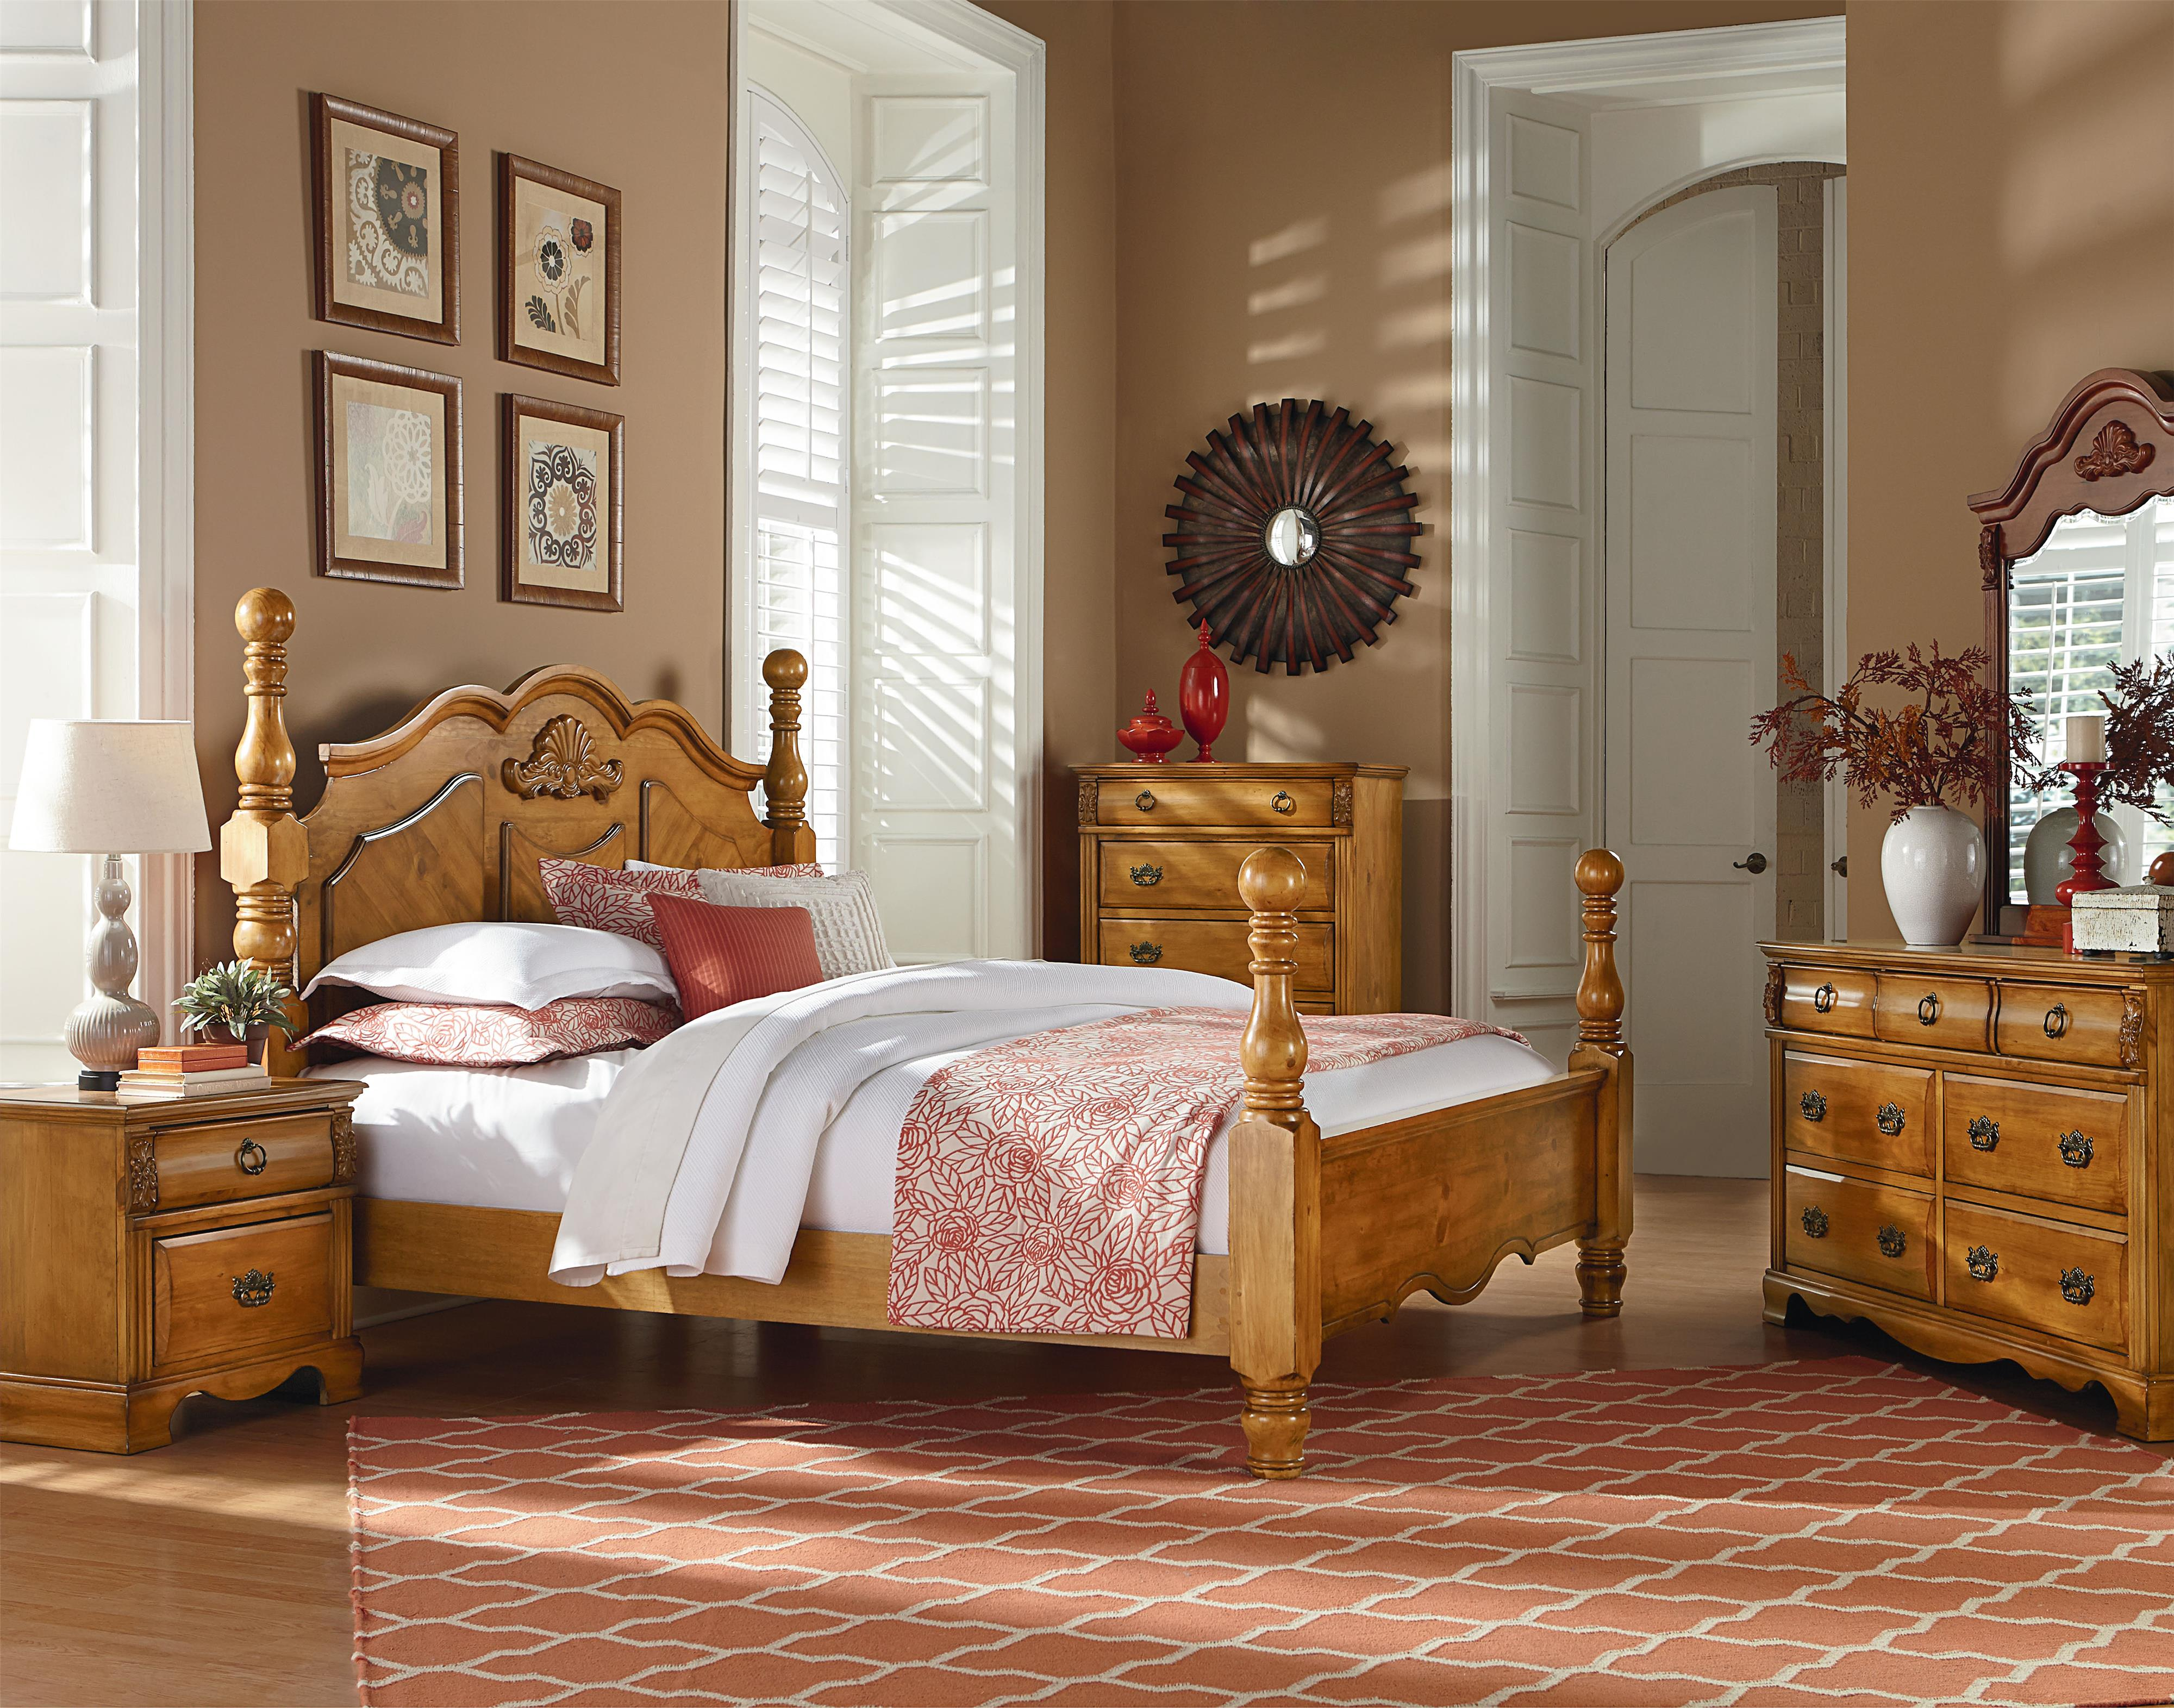 Standard Furniture Georgetown King Bedroom Group - Item Number: 83000 K Bedroom Group 1